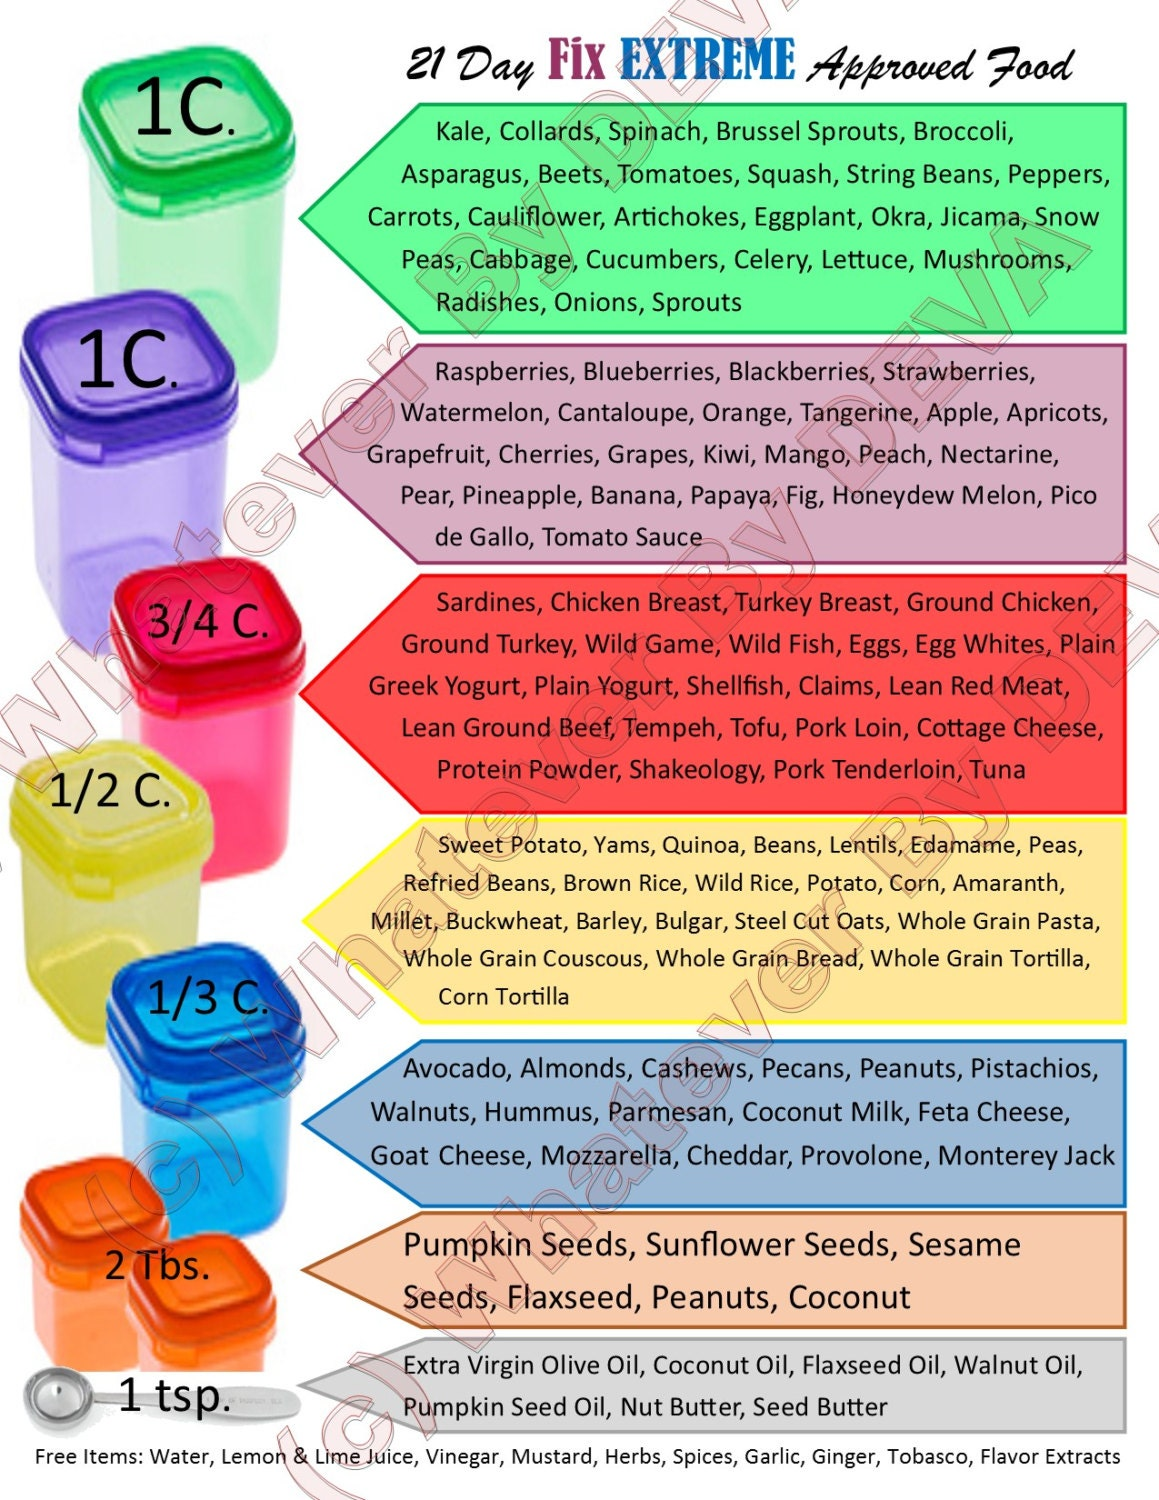 21 Day Fix Extreme Shopping List by WhateverByDEVA on Etsy